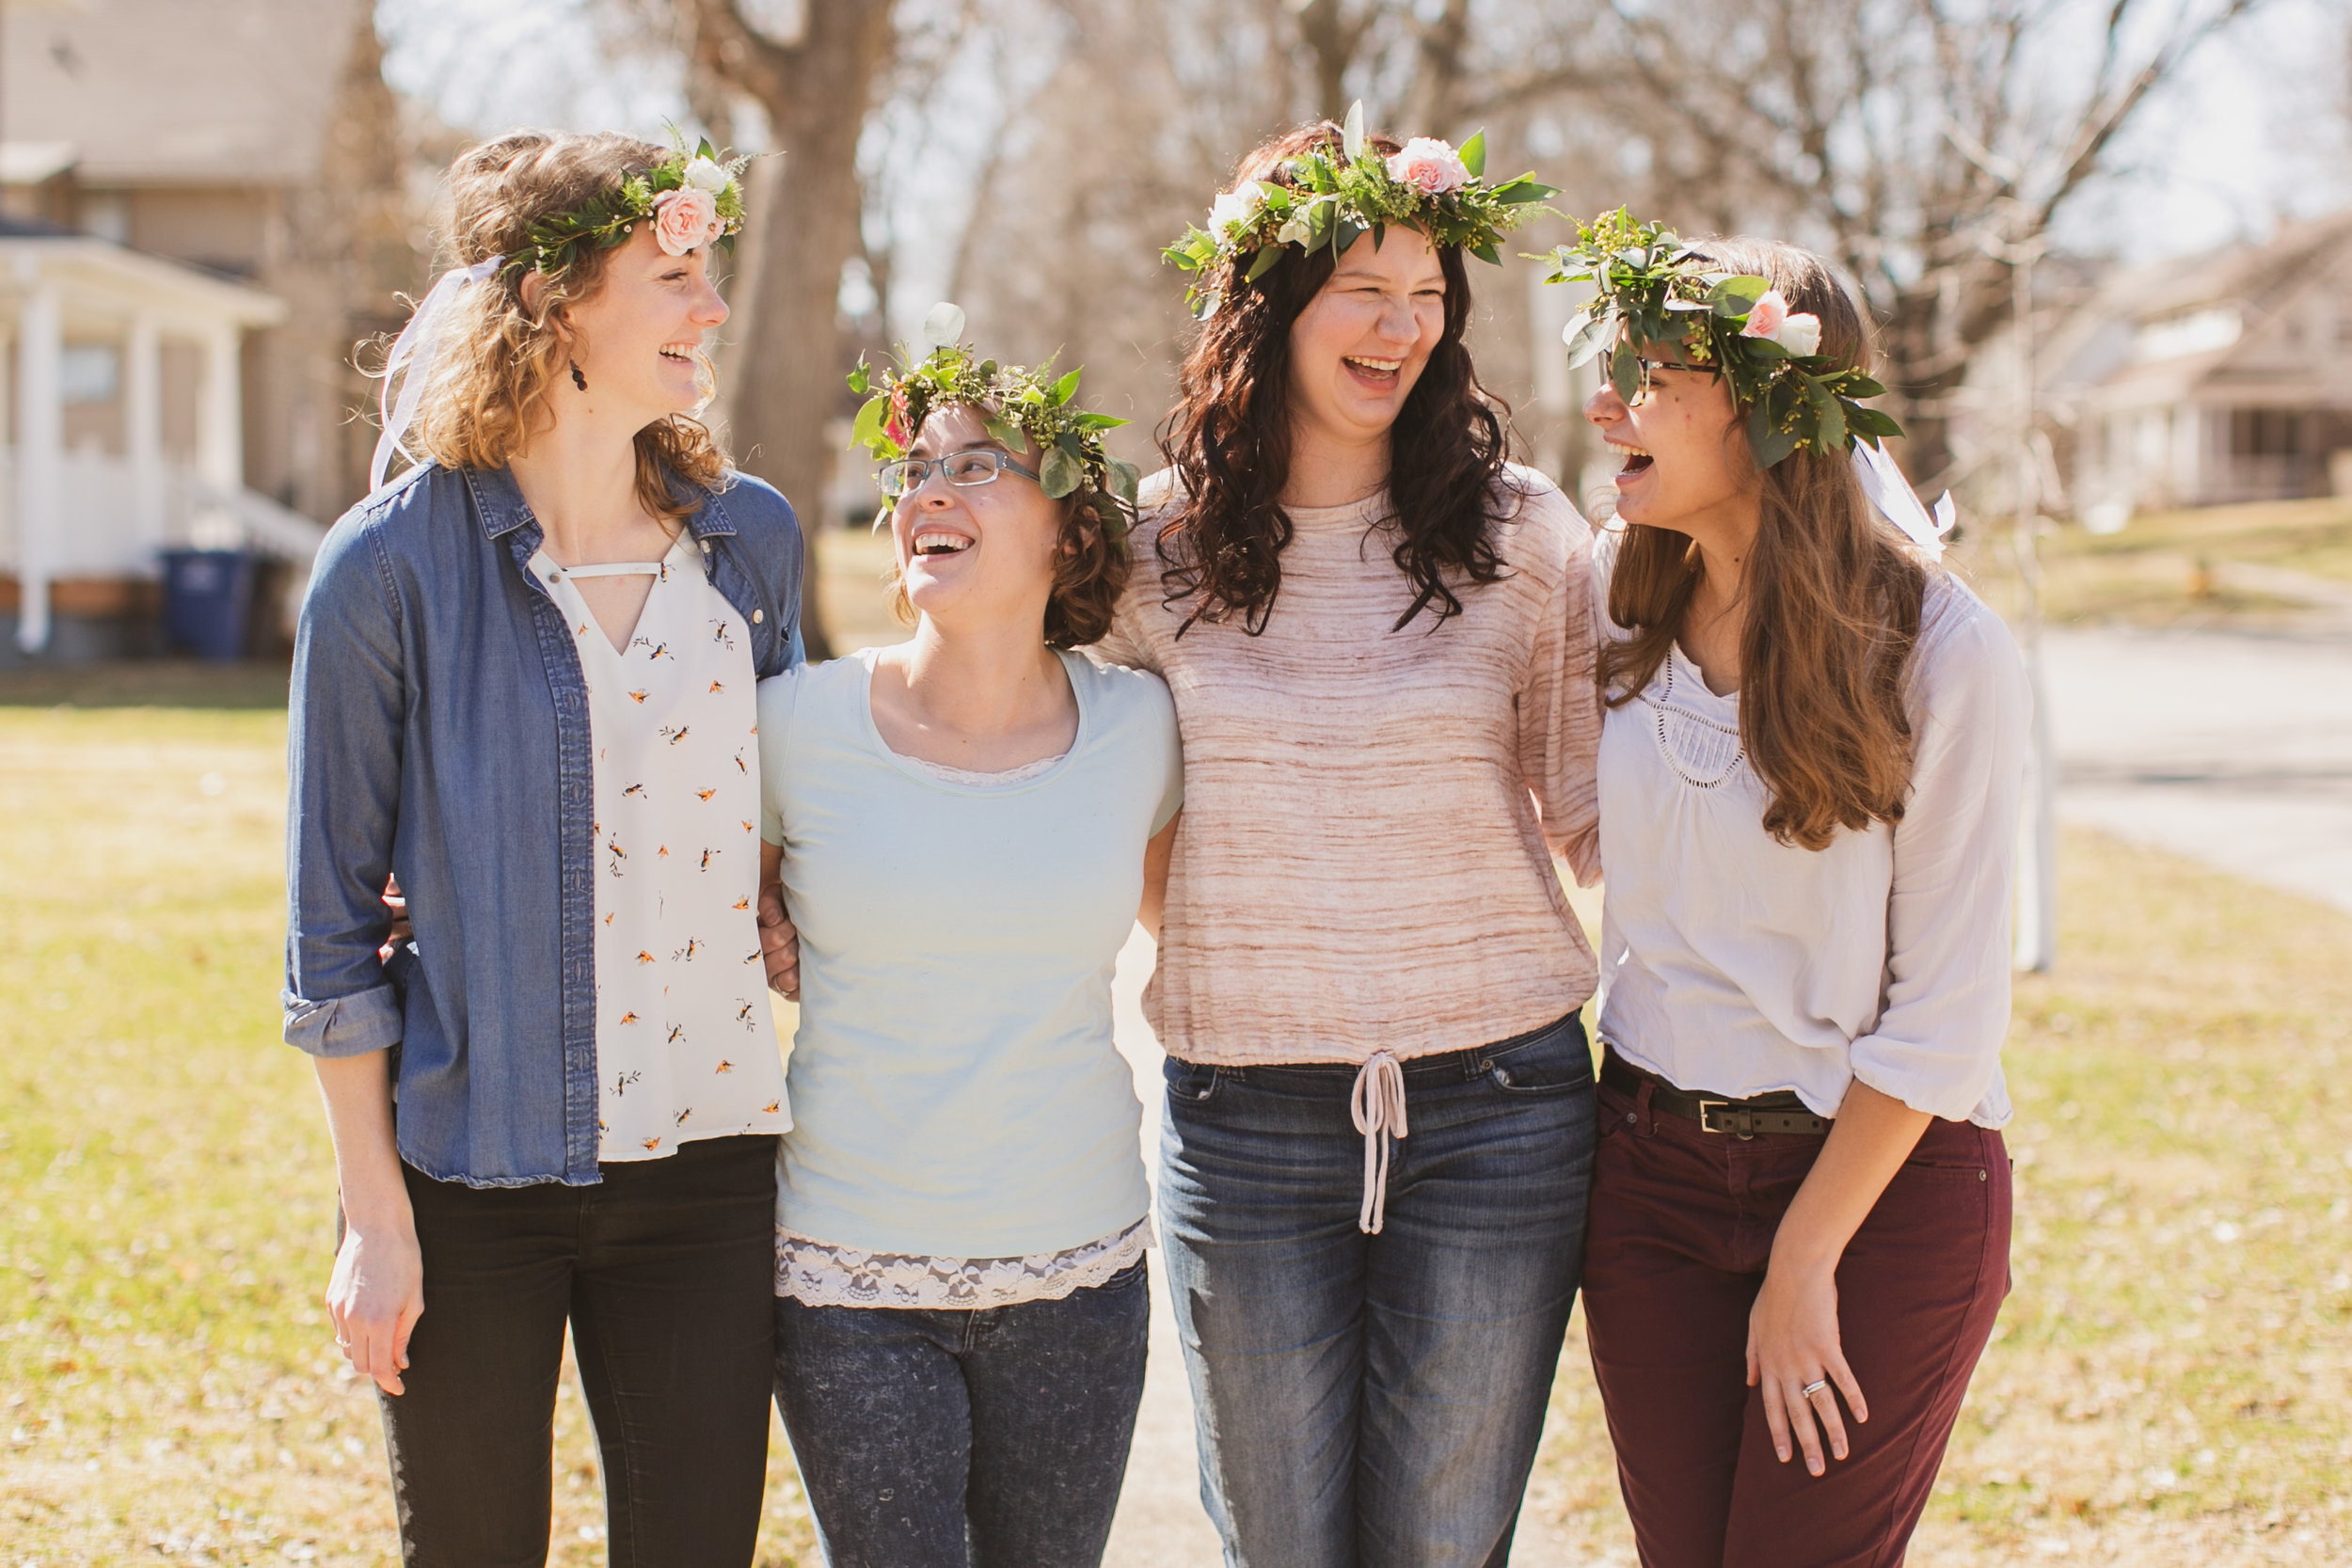 flower crown making party in des moines iowa